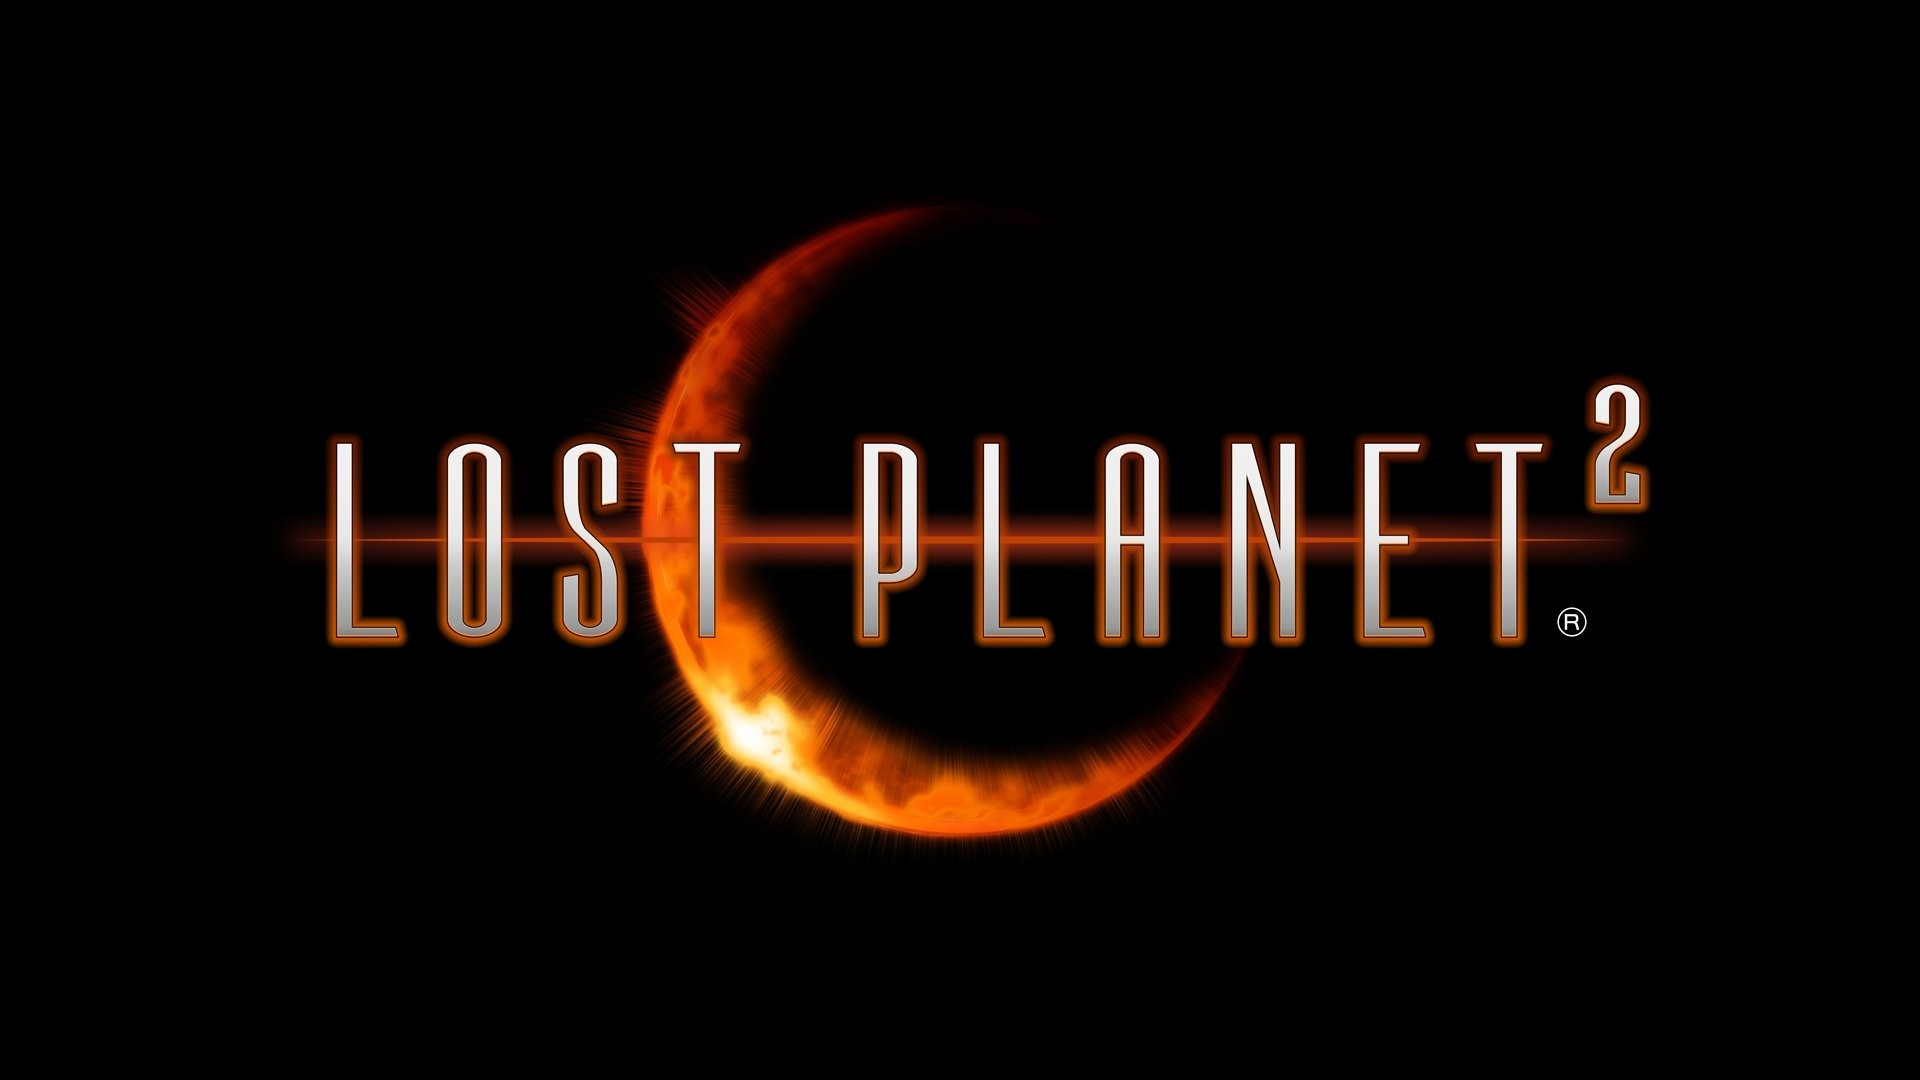 1920x1080 Wallpaper zu Lost Planet 2 herunterladen